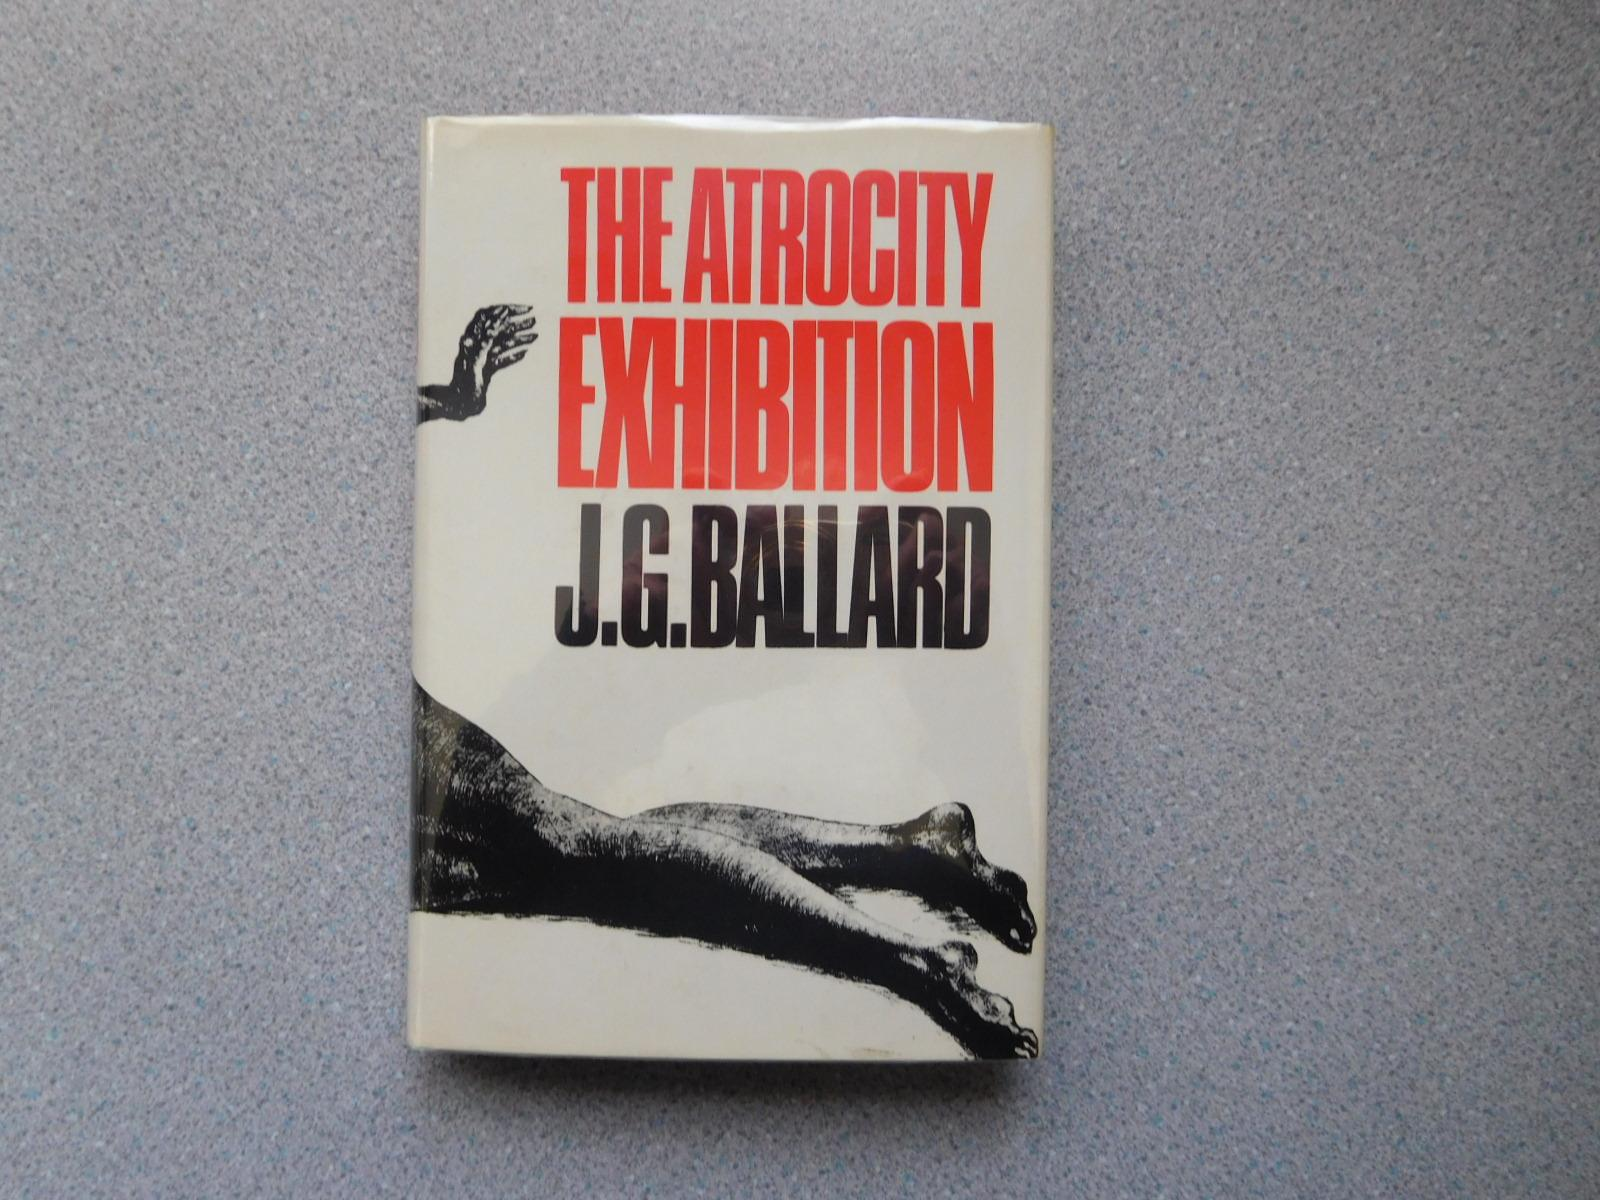 THE ATROCITY EXHIBITION (Fine Signed Copy) Ballard, J.G. Fine Hardcover First edition. Fine, sharp copy of a mesmerising Ballard tapas selection, tasty, spicy and as satisfying as a mixed metaphor supported by the music of